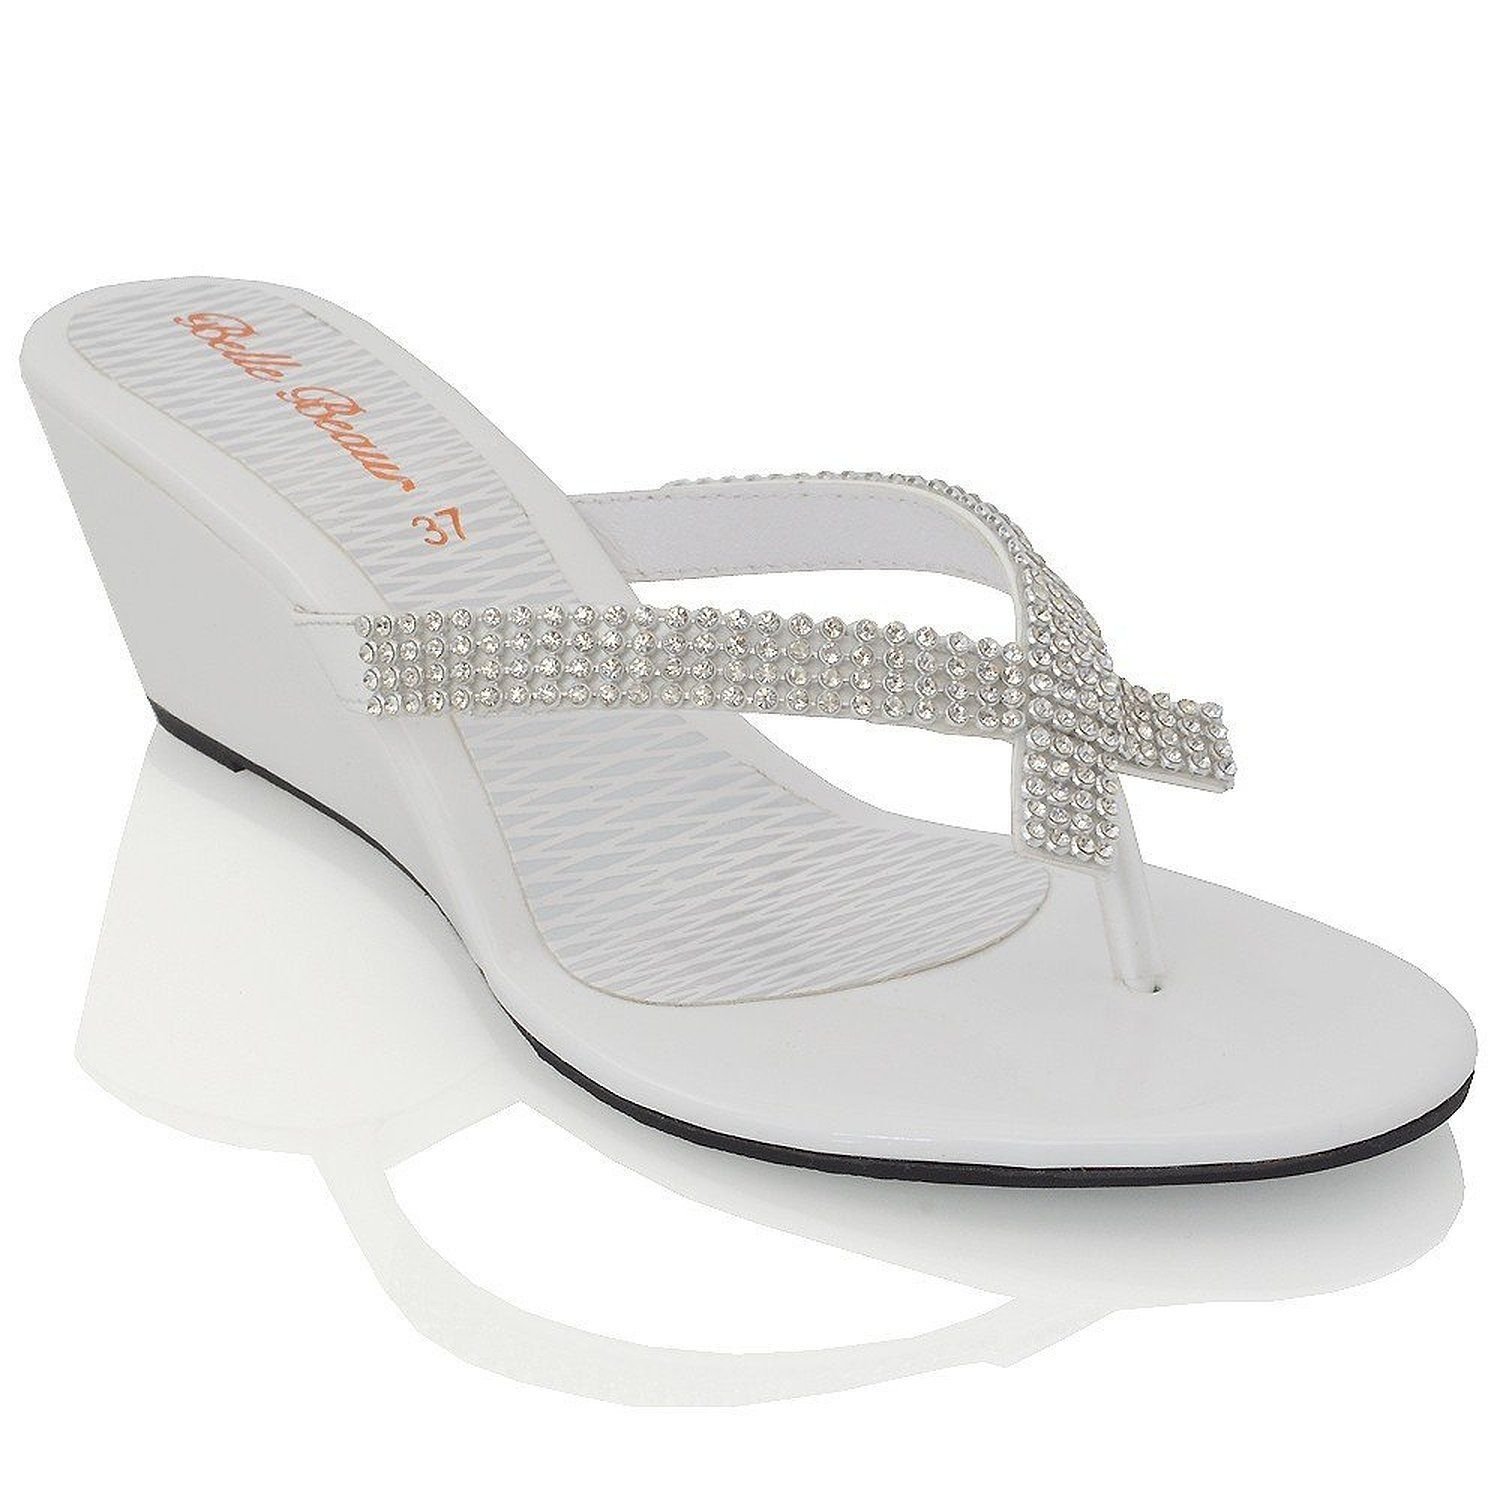 86fc7ac7a30c Essex Glam Womens Slip On Toe Post Sparkly Diamante Synthetic low heel  Wedge Sandals -- Want additional info? Click on the image.